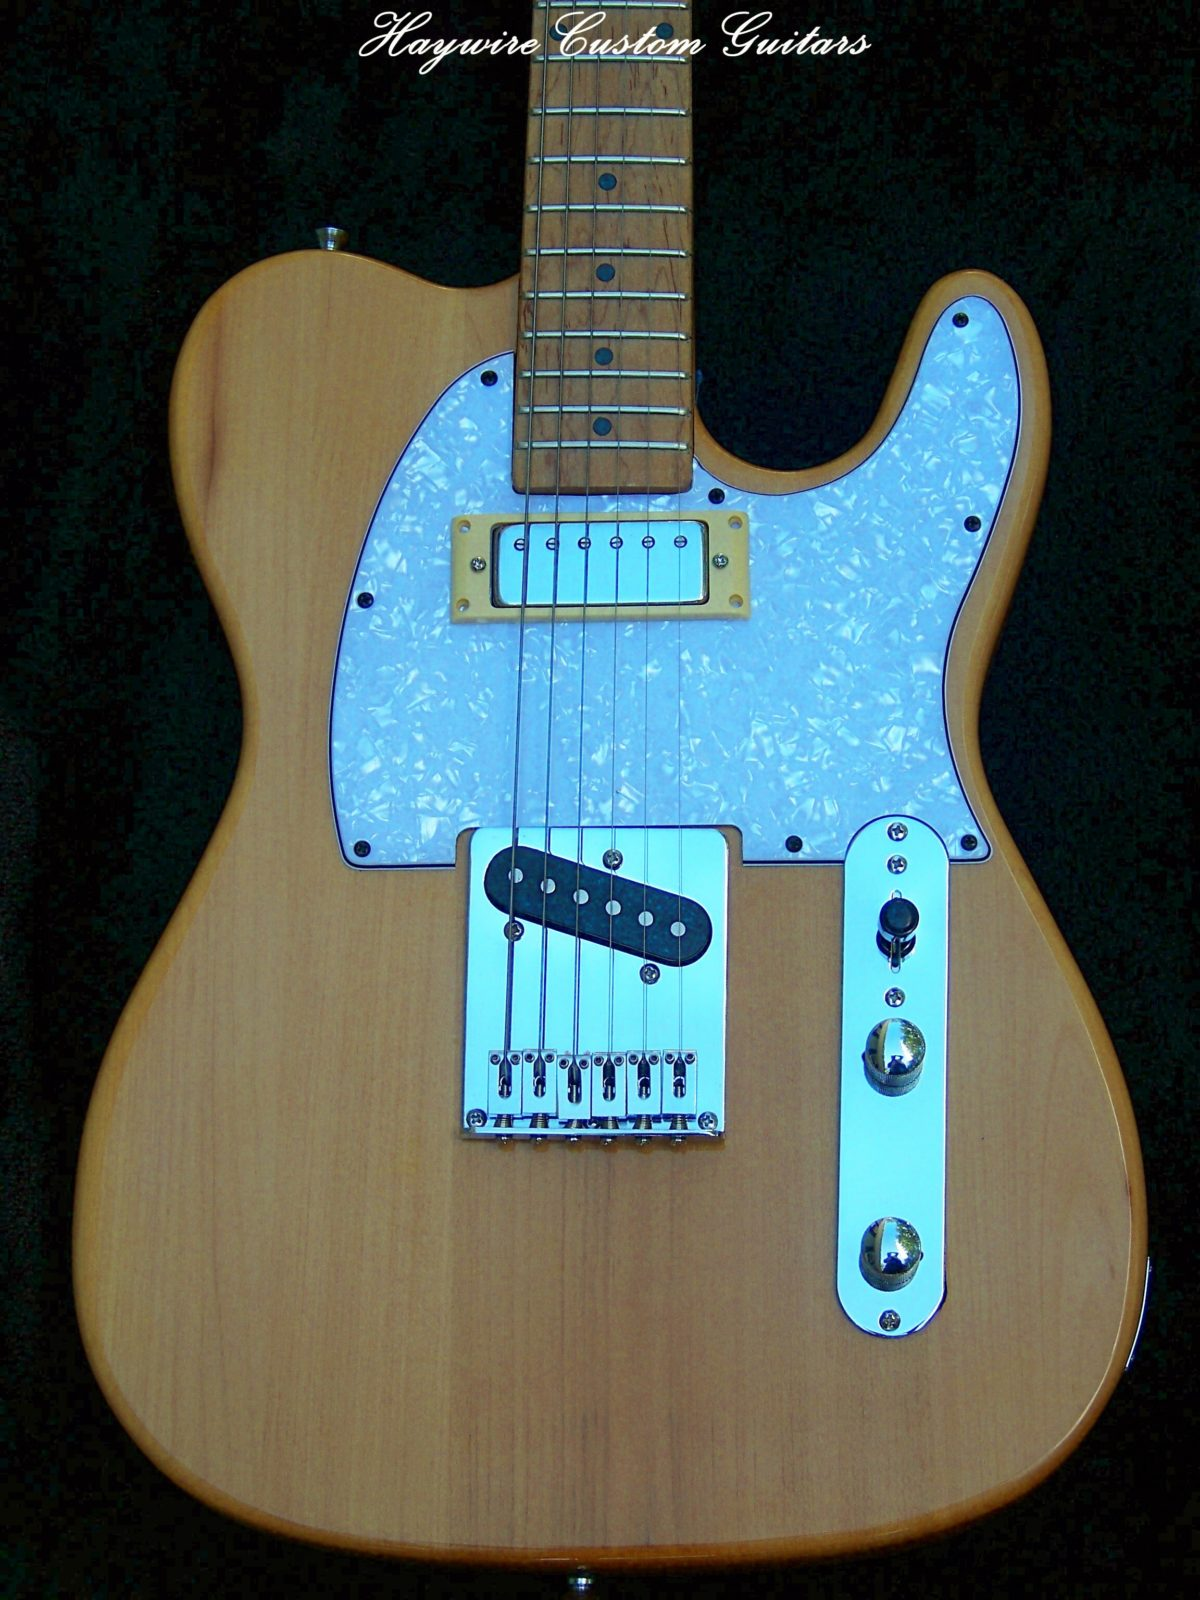 Haywire Custom Guitars P-90 T Deluxe